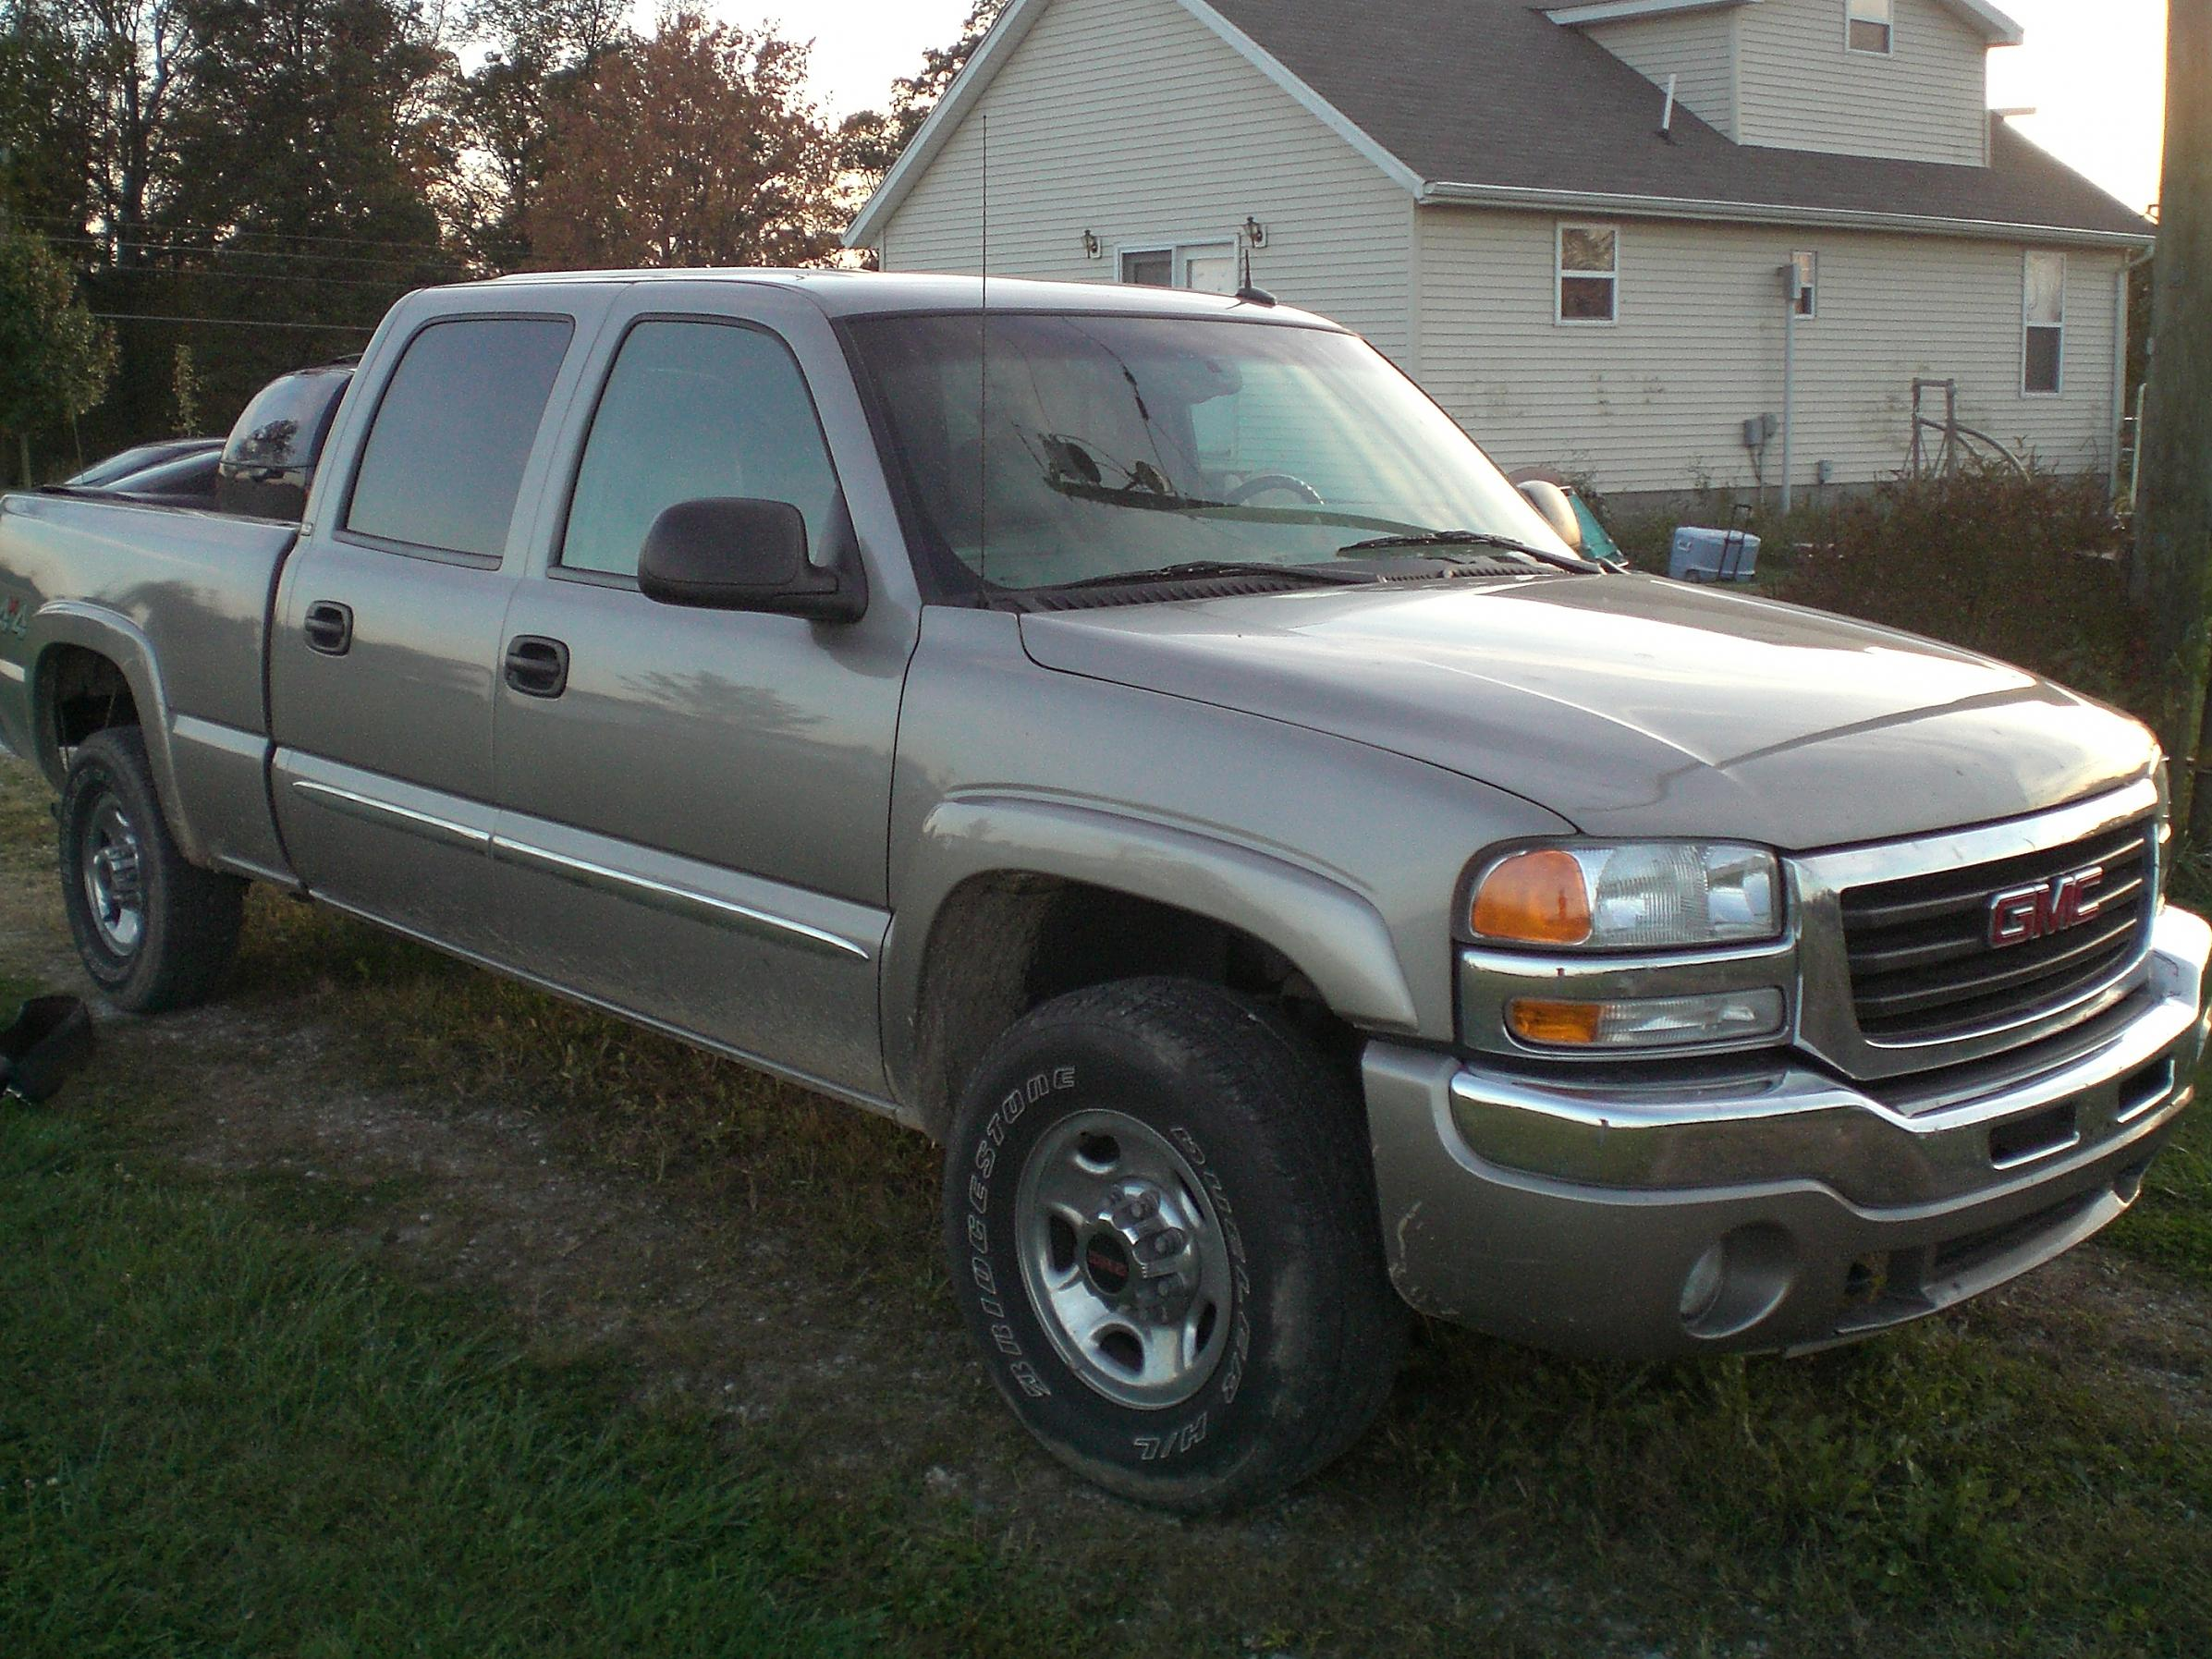 2003 gmc sierra 1500hd 3 gmc sierra 1500hd 3